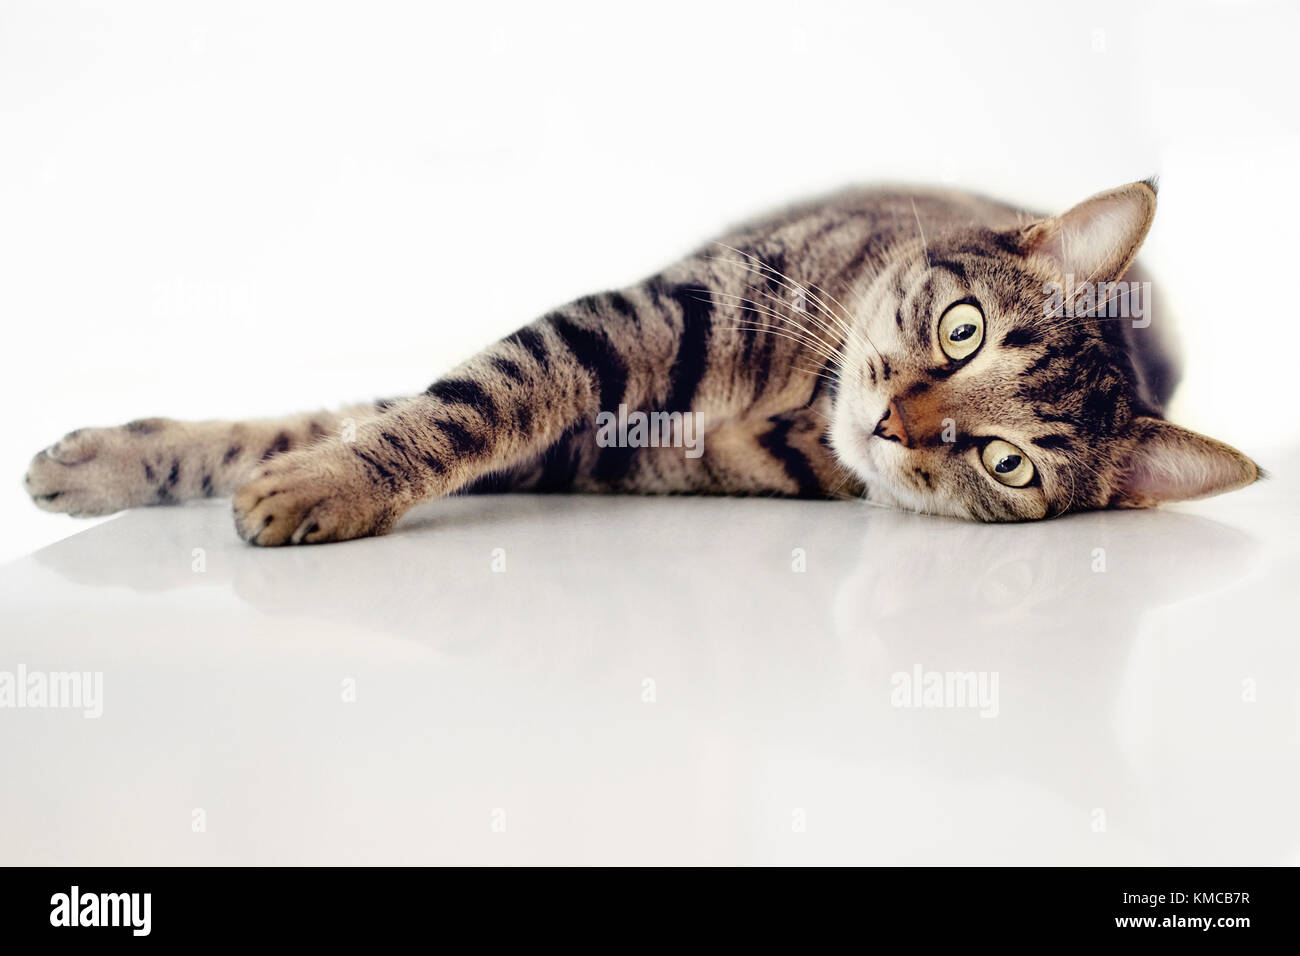 Tabby cat is lying down - Stock Image